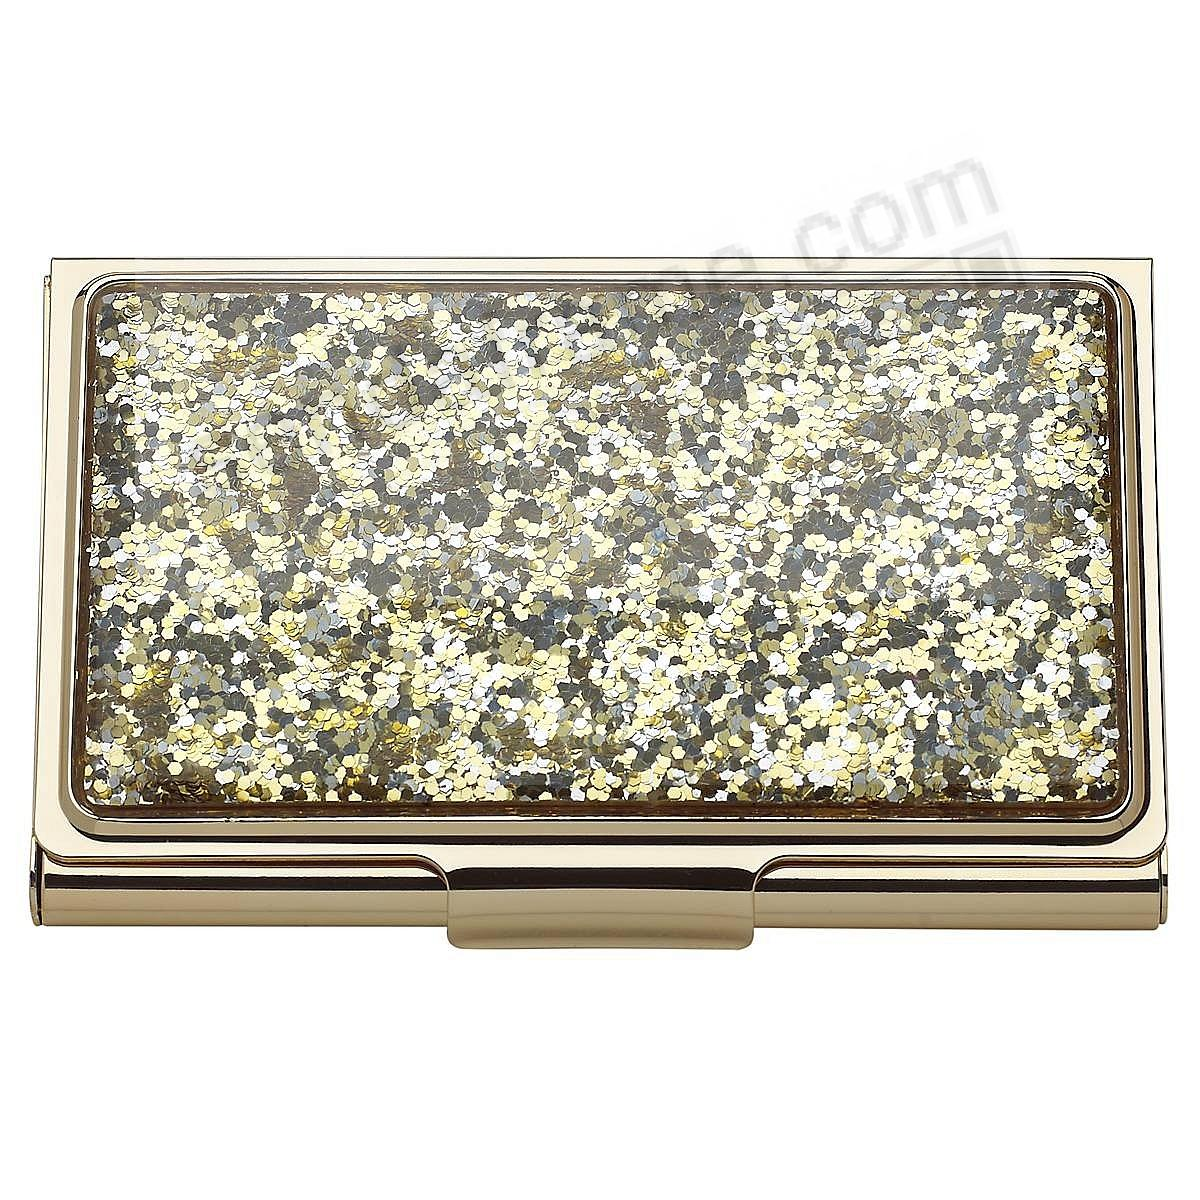 SIMPLY SPARKING GOLD GLITTER Business Card / ID Case by kate spade new york®